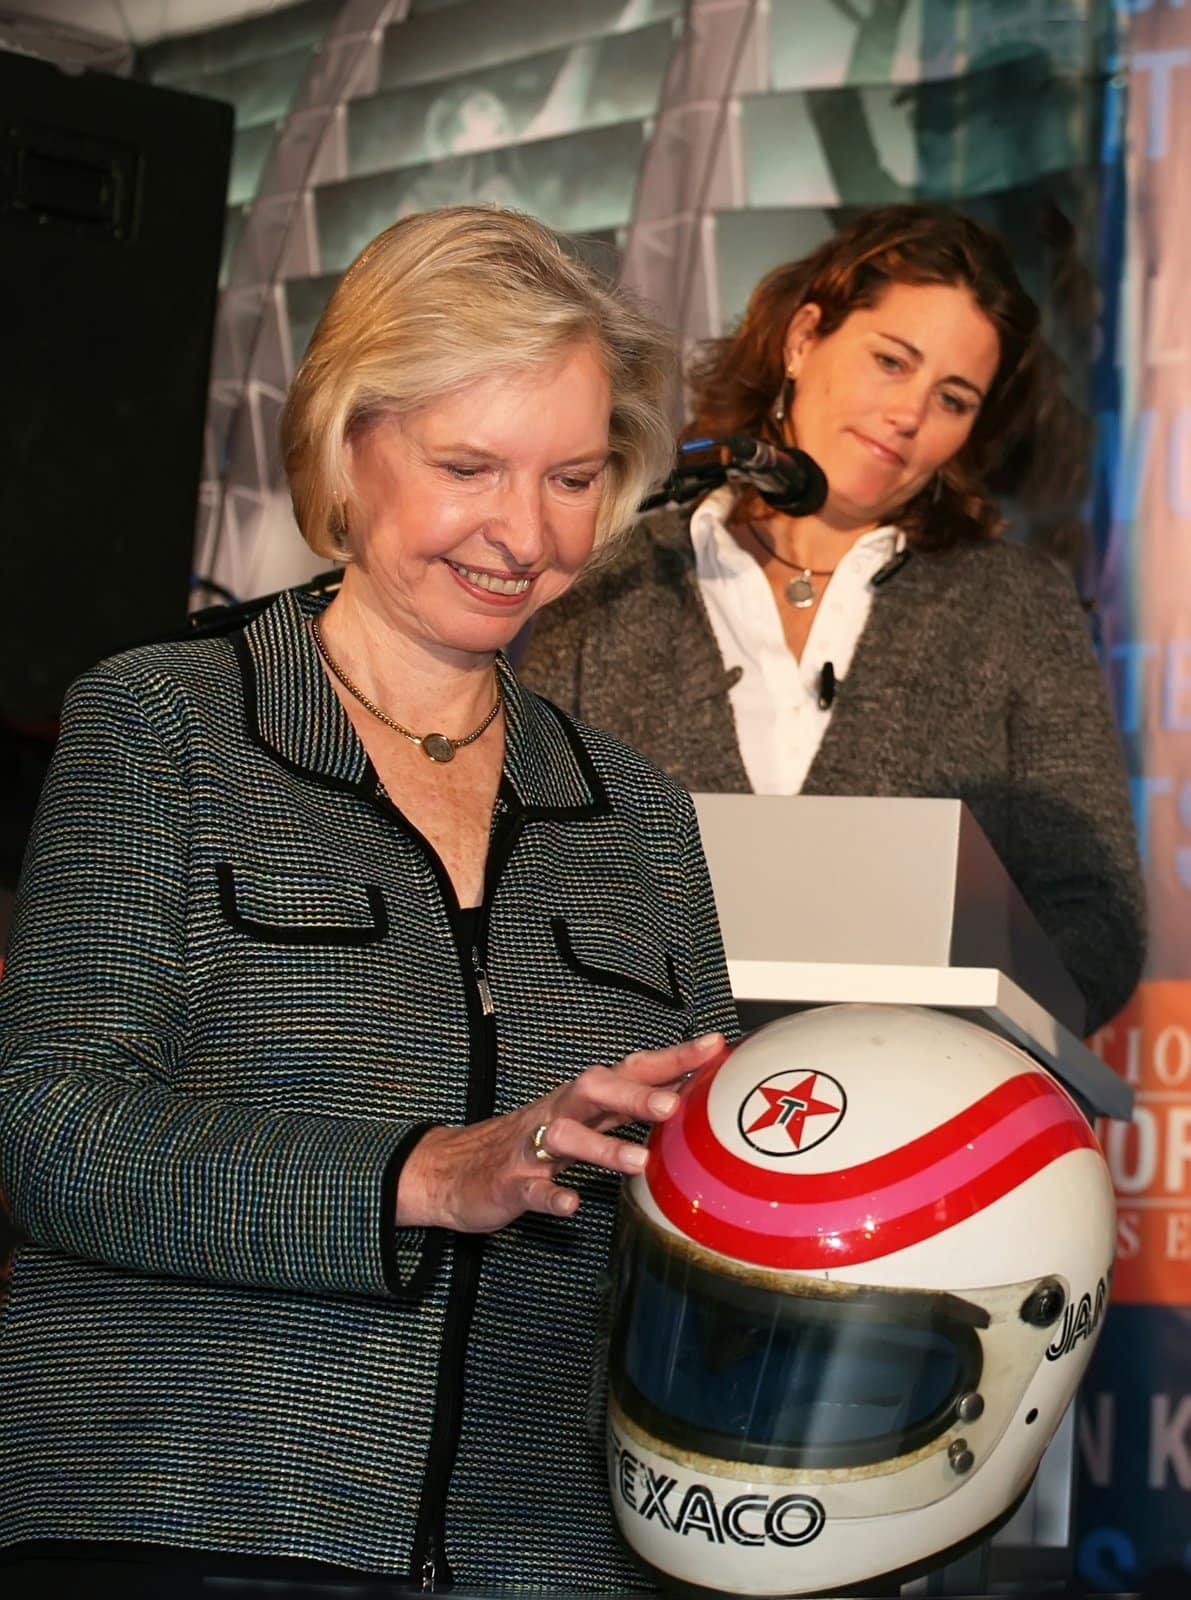 Race car driver Janet Guthrie photo by Laurence Agron | Dreamstime.com (2006)